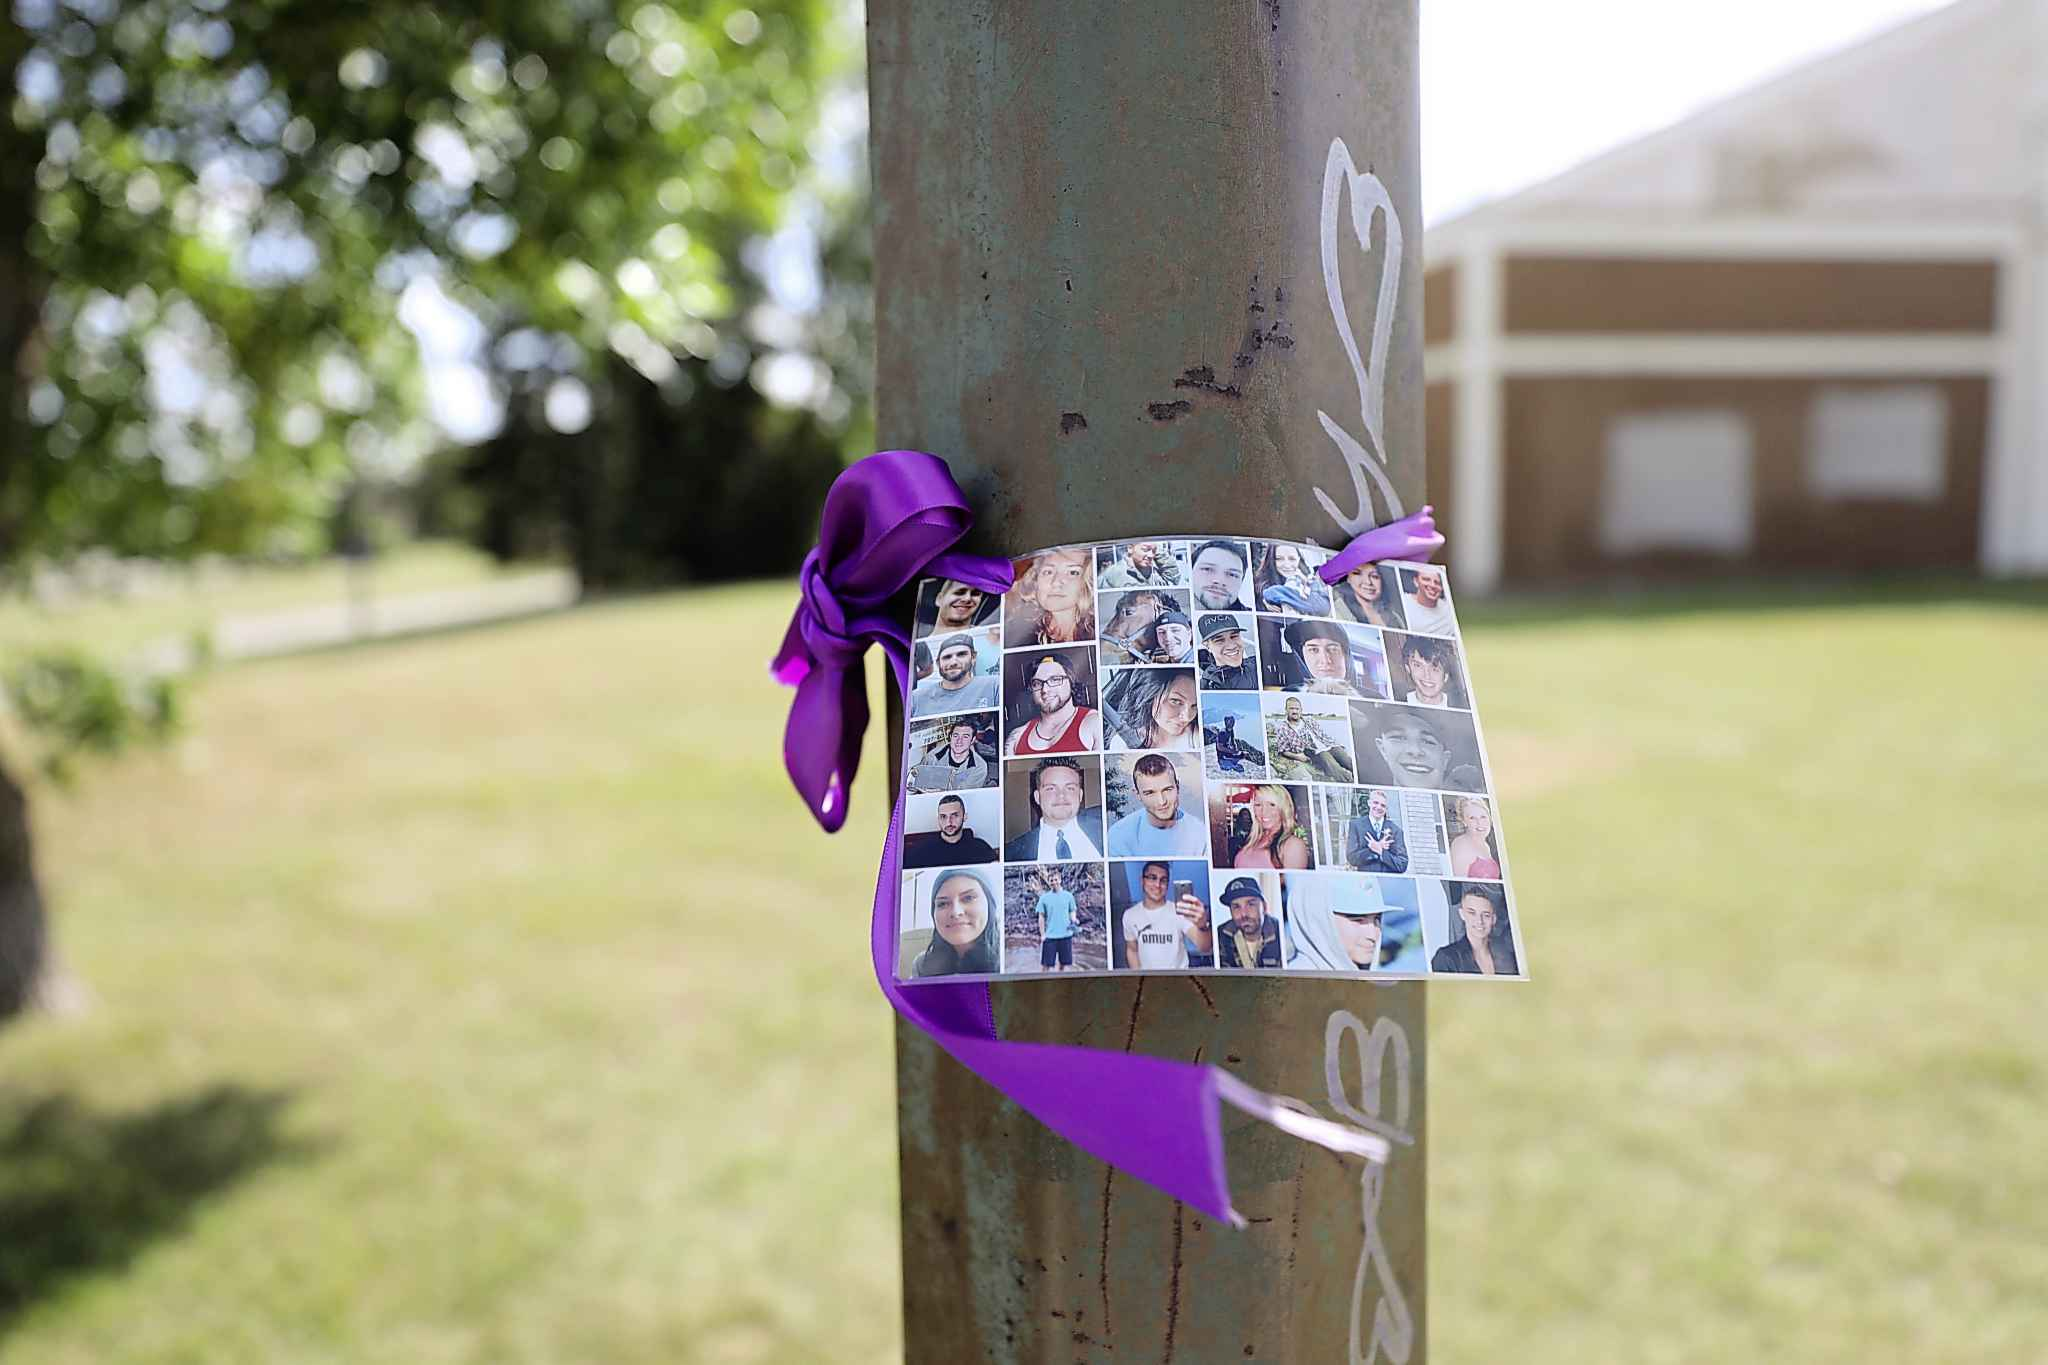 Purple ribbons are placed on door handles and light poles, some with photos of those who lost their lives  to addictions, around the old Vimy Arena.